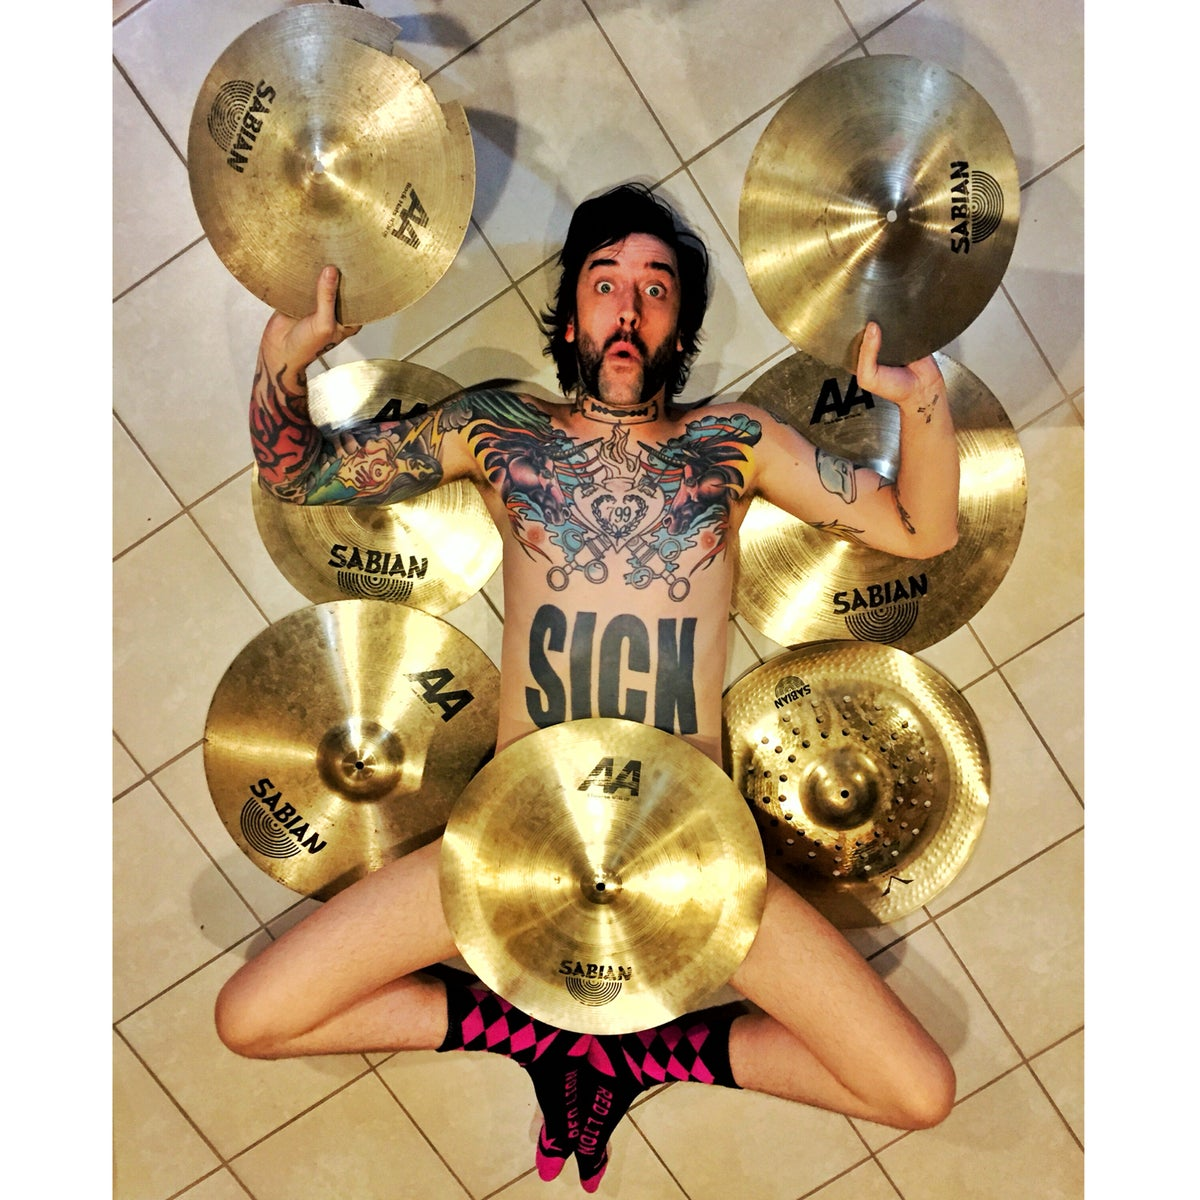 Image of Cymbals signed by Joe Letz